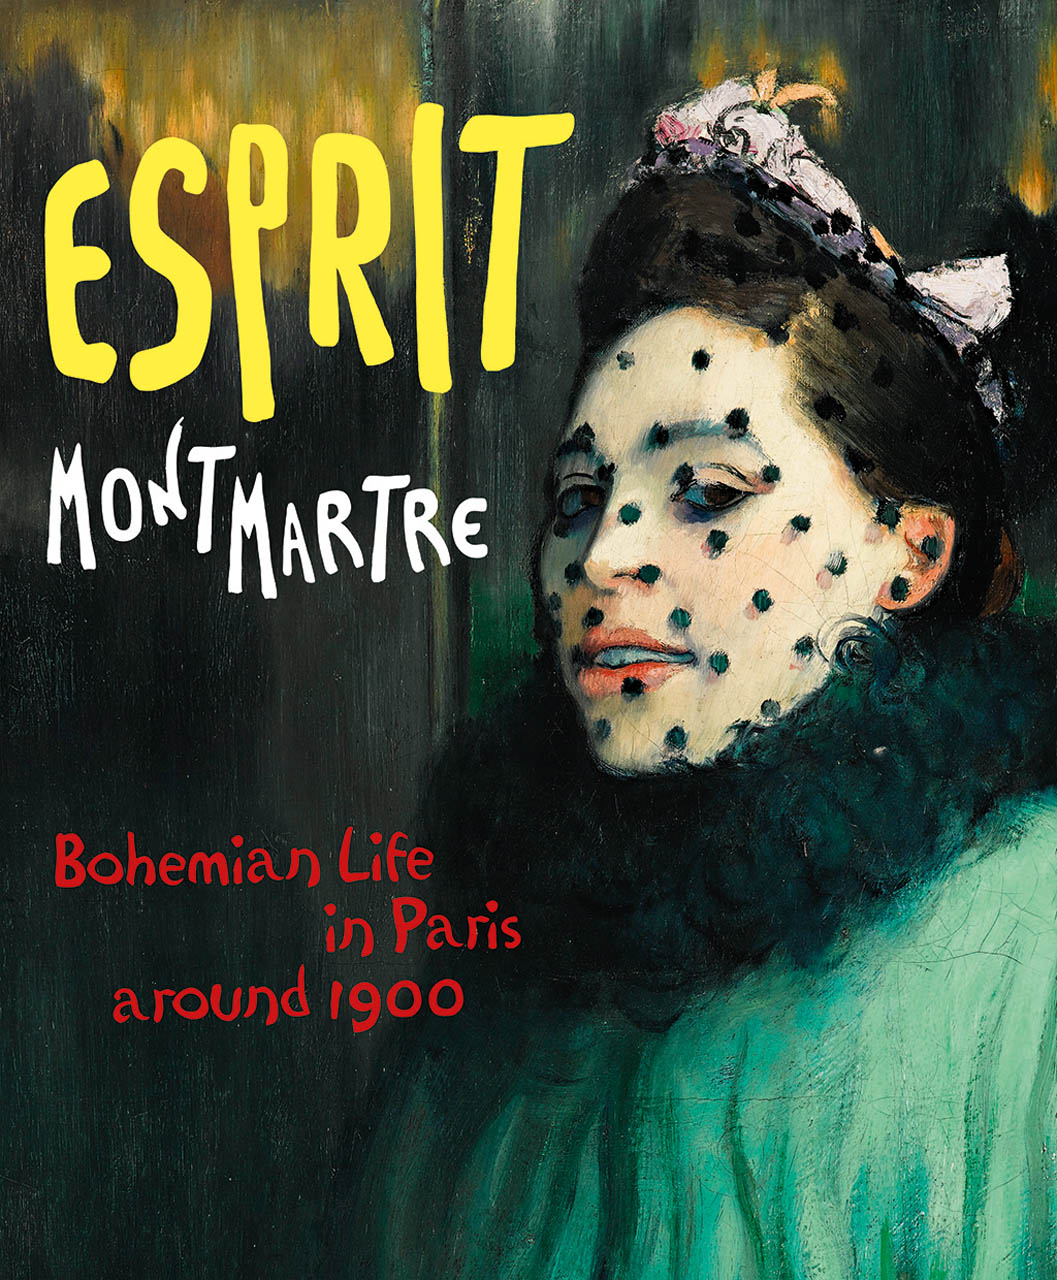 Esprit Montmartre: Bohemian Life in Paris around 1900